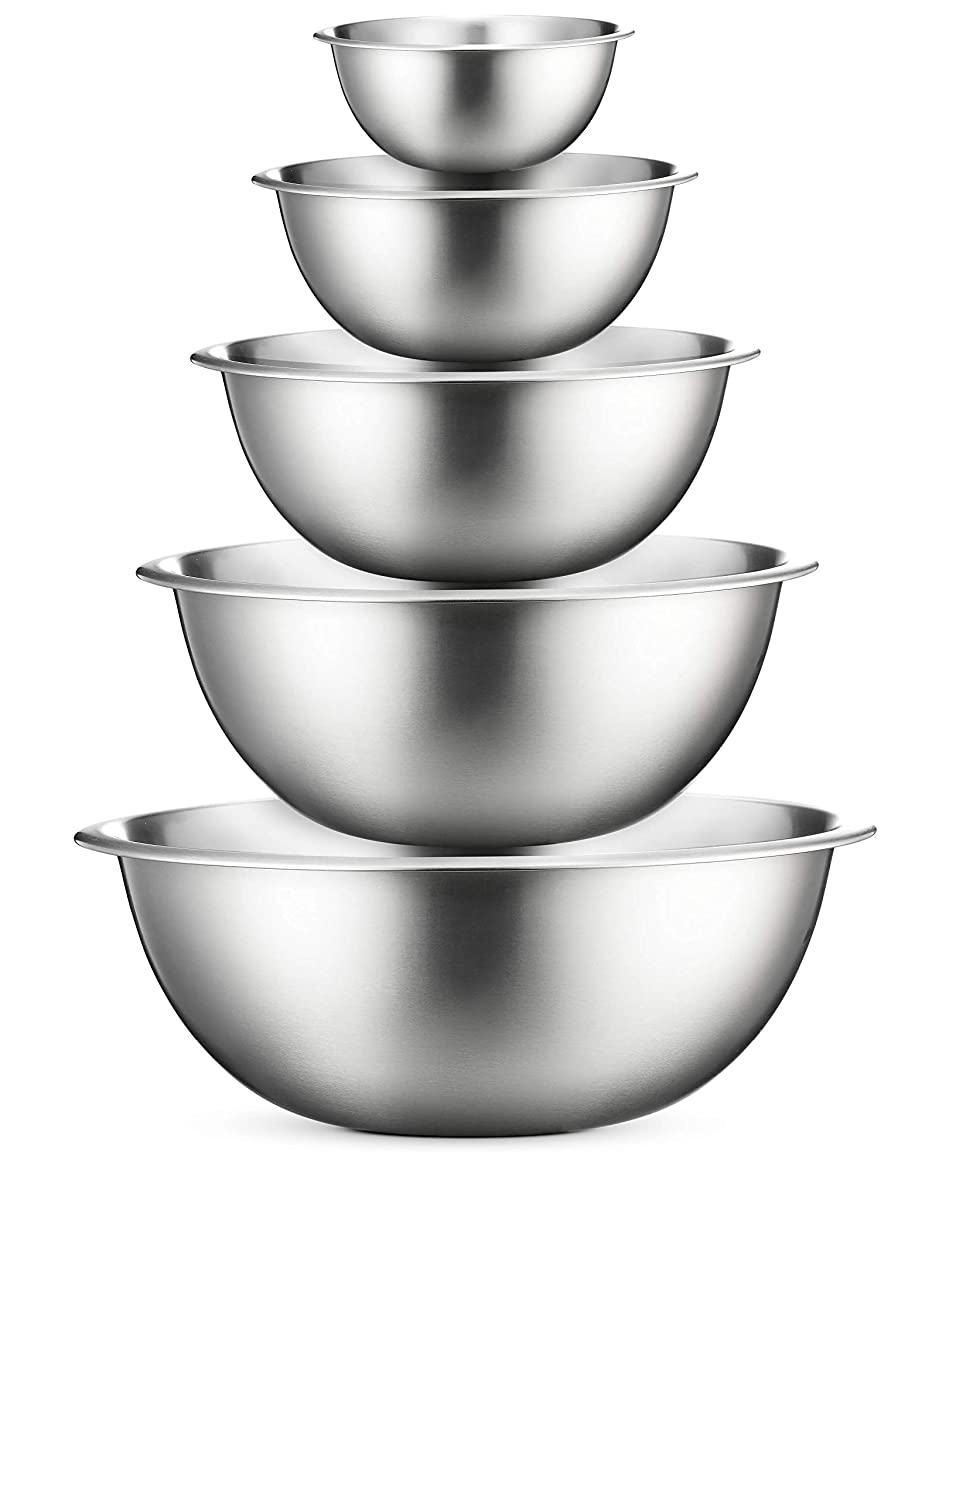 Premium Stainless Steel Mixing Bowls (Set of 5) Brushed Stainless Steel Mixing Bowl Set - Easy To Clean, Nesting Bowls for Space Saving Storage, Great for Cooking, Baking, Prepping